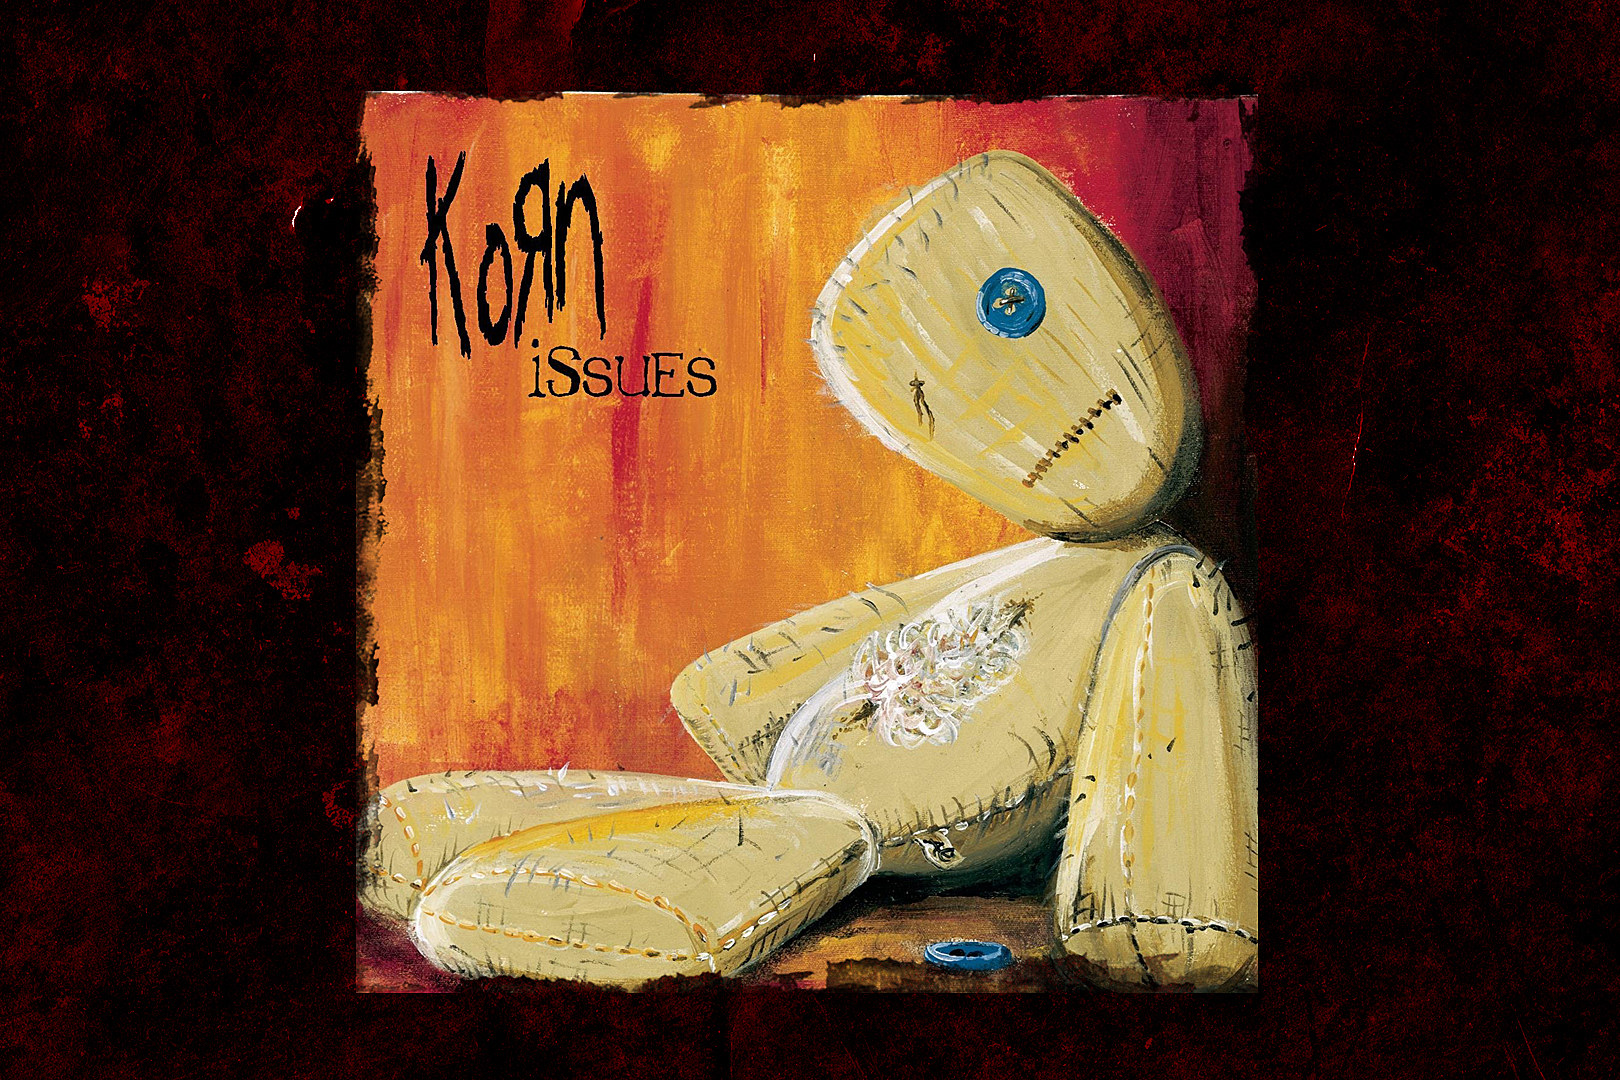 18 Years Ago: Korn Followed Their Own Lead With 'Issues'